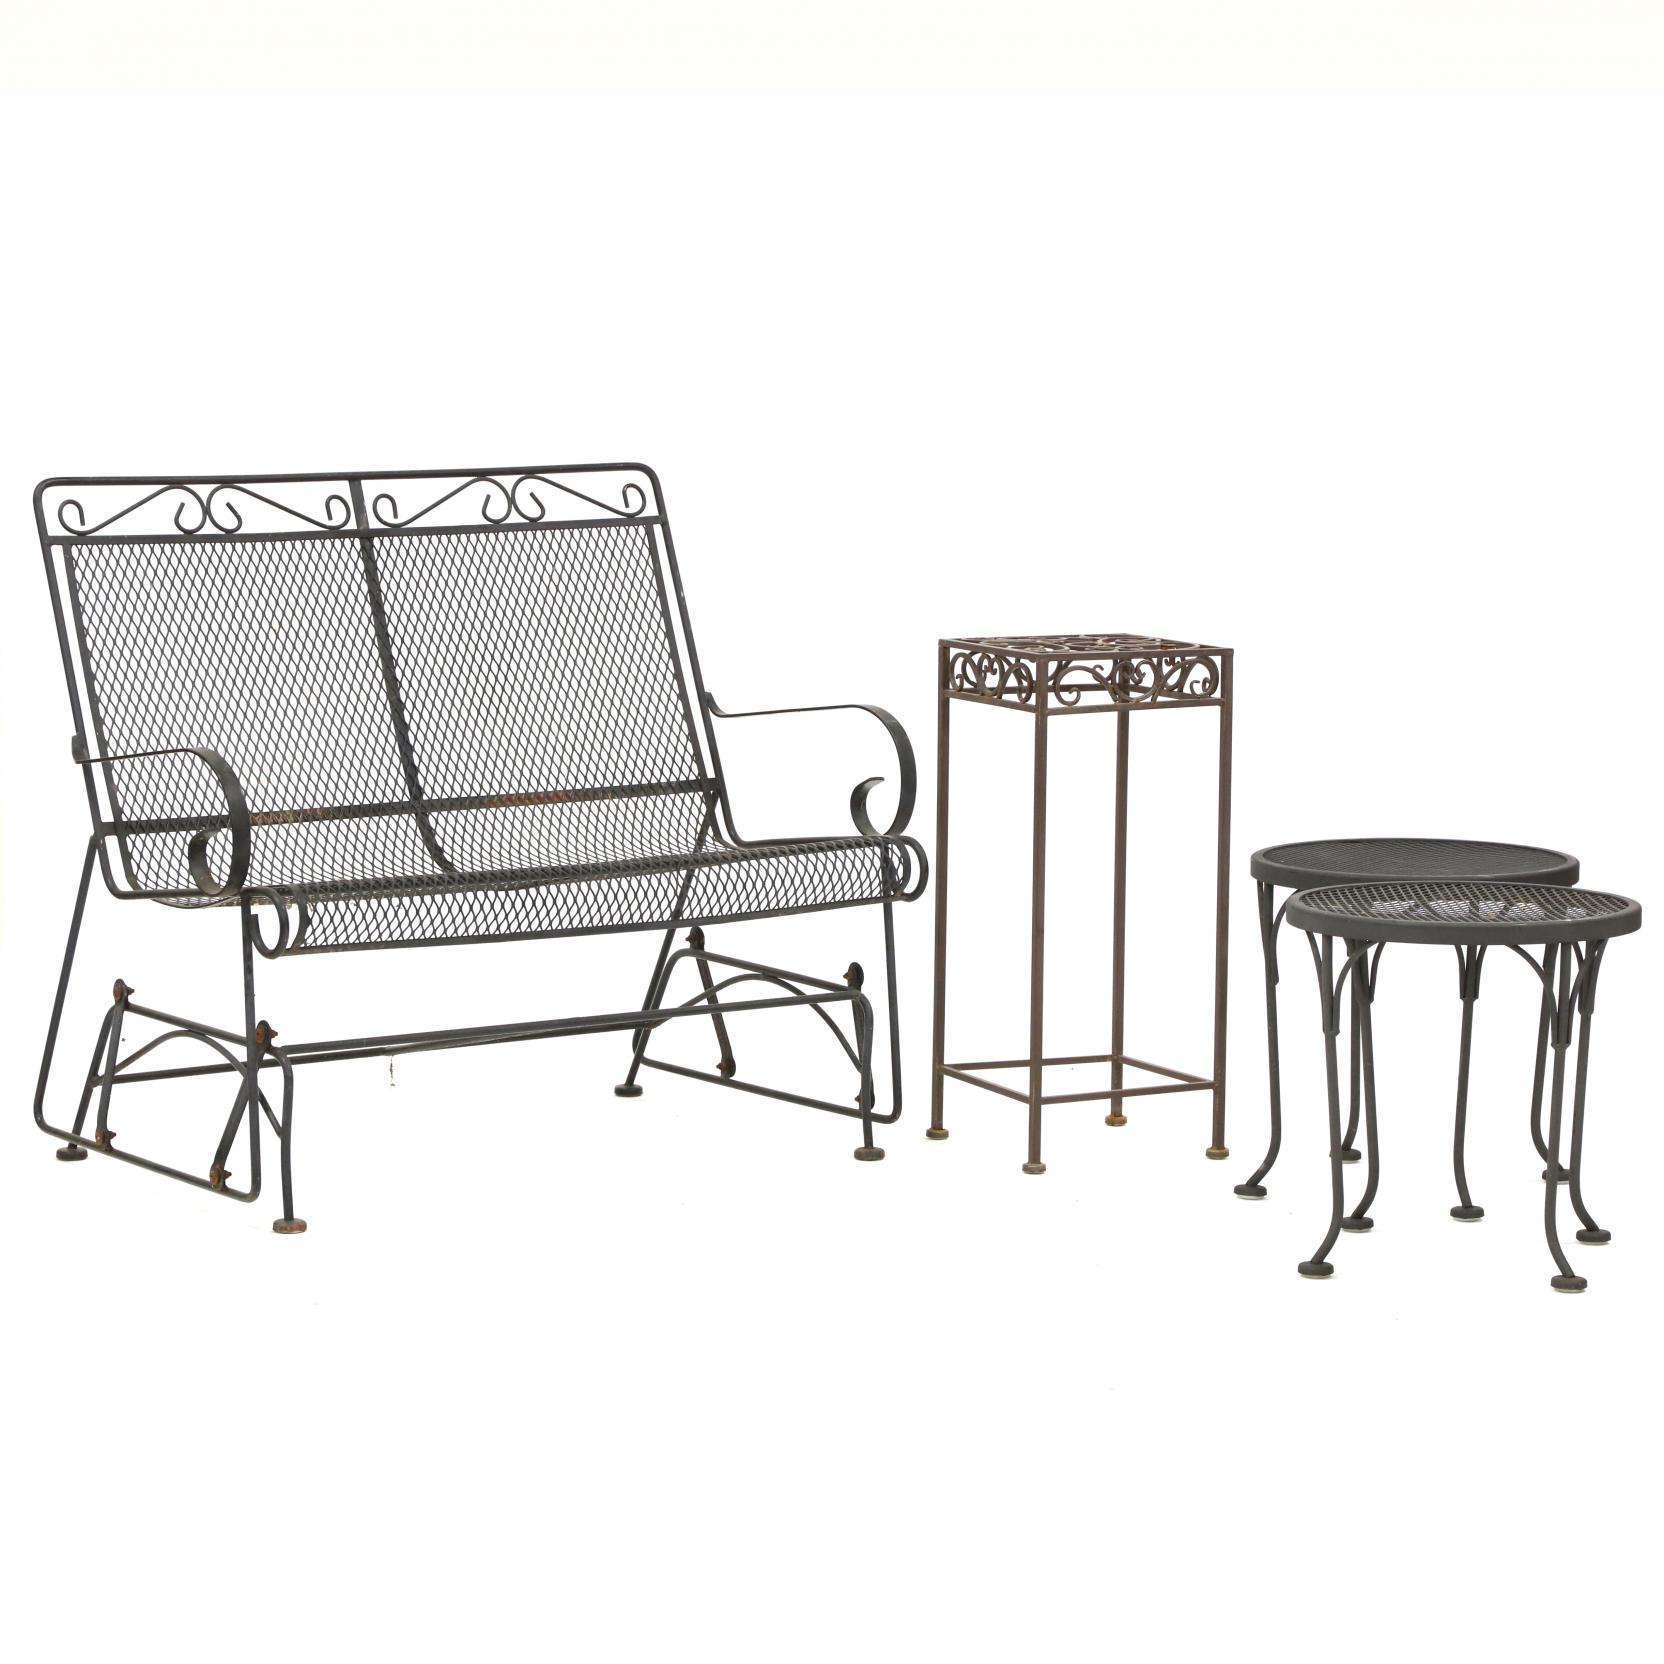 four-pieces-of-iron-patio-furniture